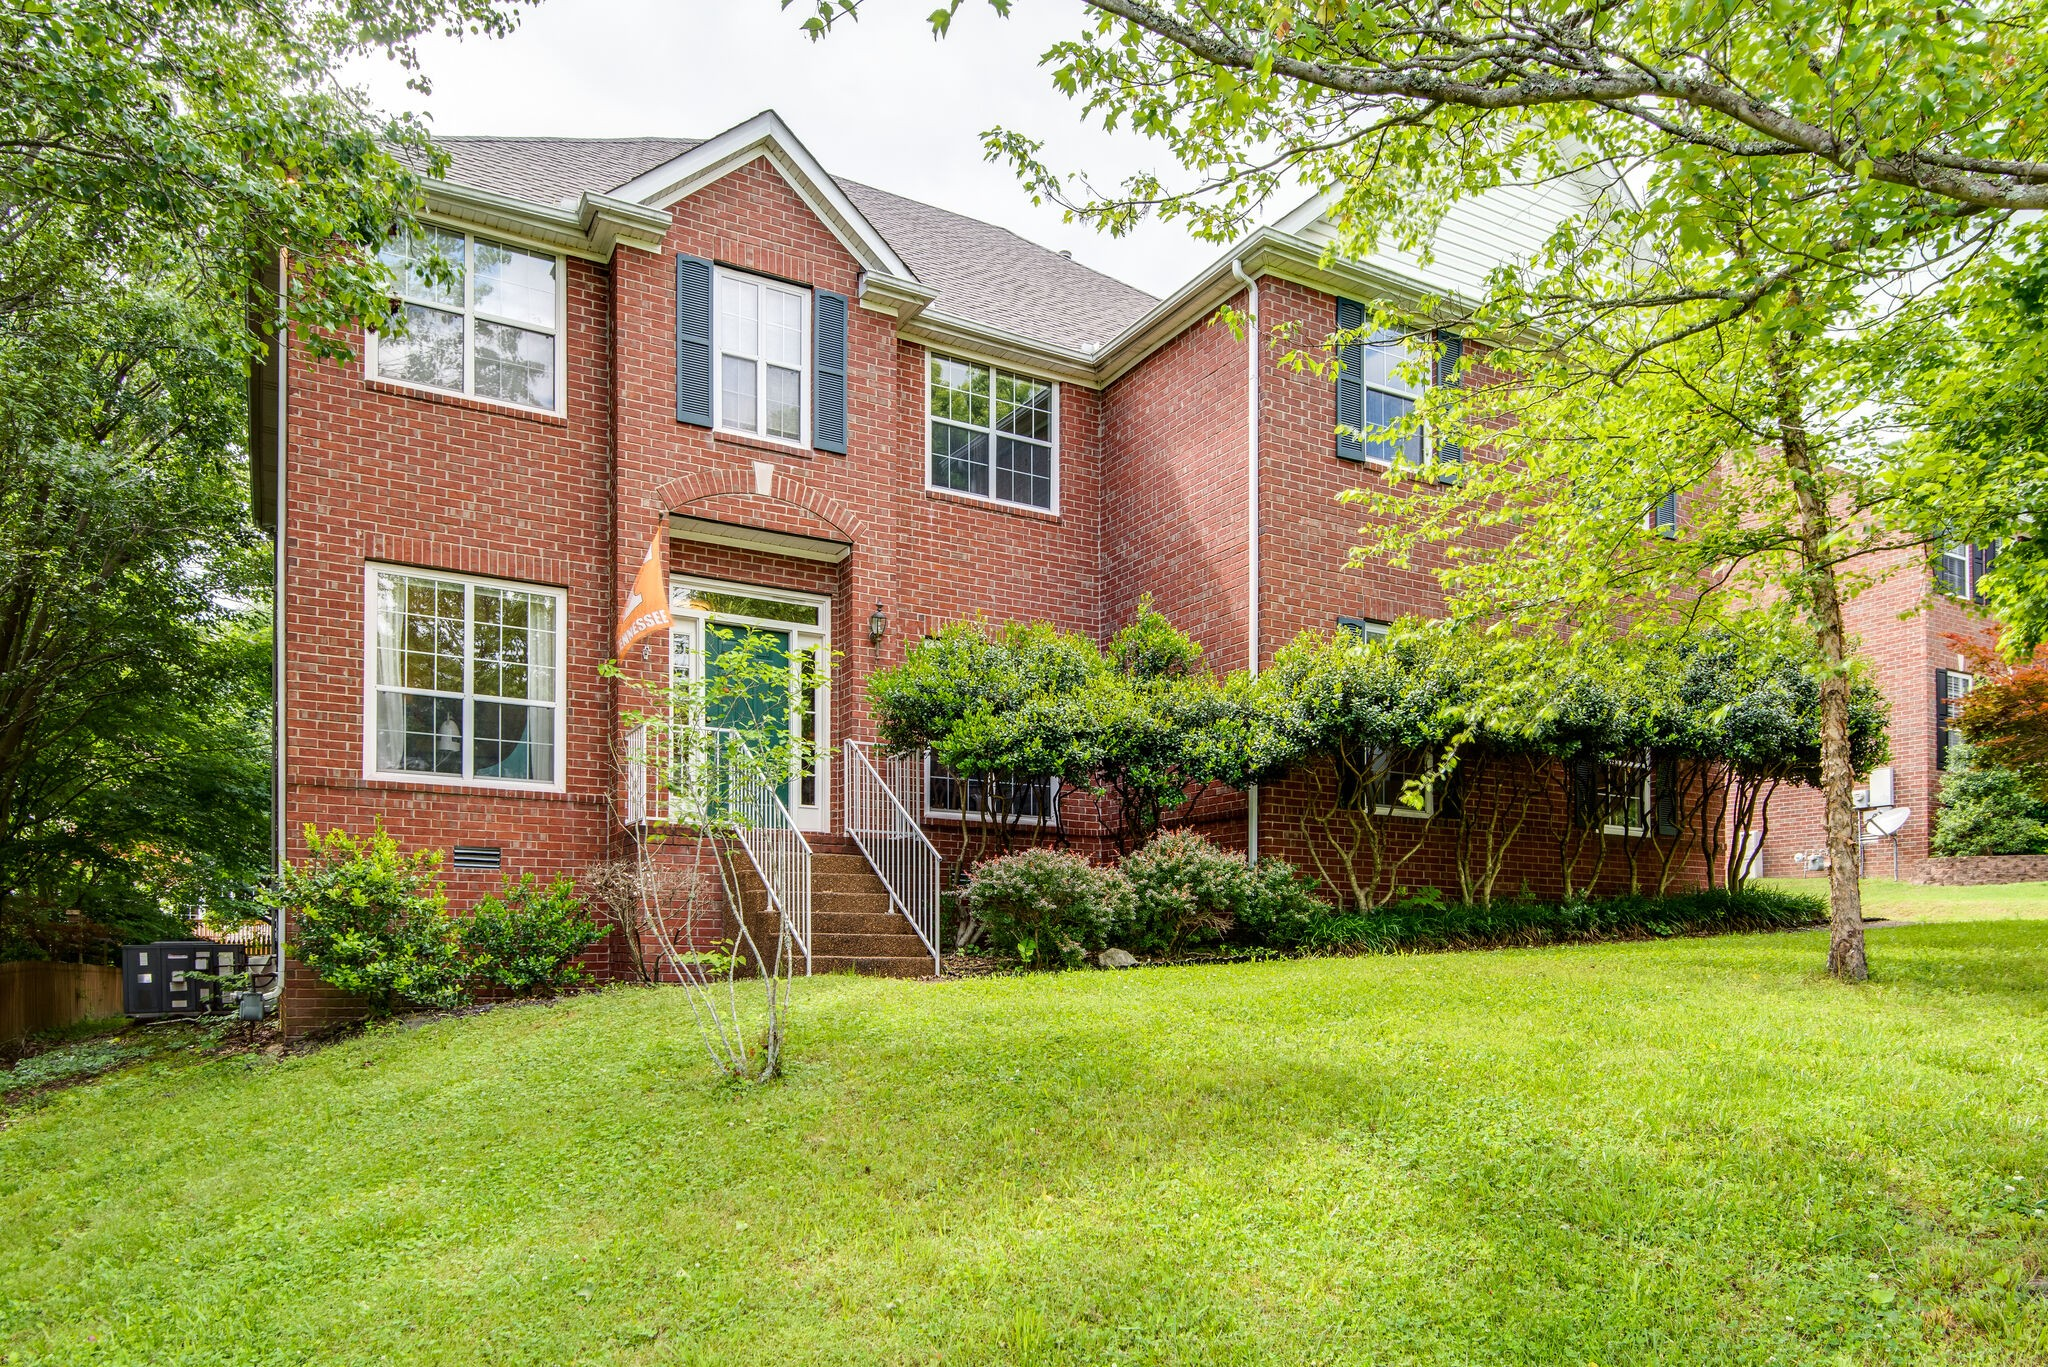 Gorgeous All Brick Home in a Well Established, Quiet Neighborhood; mins to I65 & Cool Springs; Mature Trees, Neighborhood Sidewalks; Open Concept Floor Plan; Luxury SPC Flooring; SS Appliances; Loft Bonus Room; No HOA; Back Patio Pergola to Remain; Hot Tub Does Not Remain;